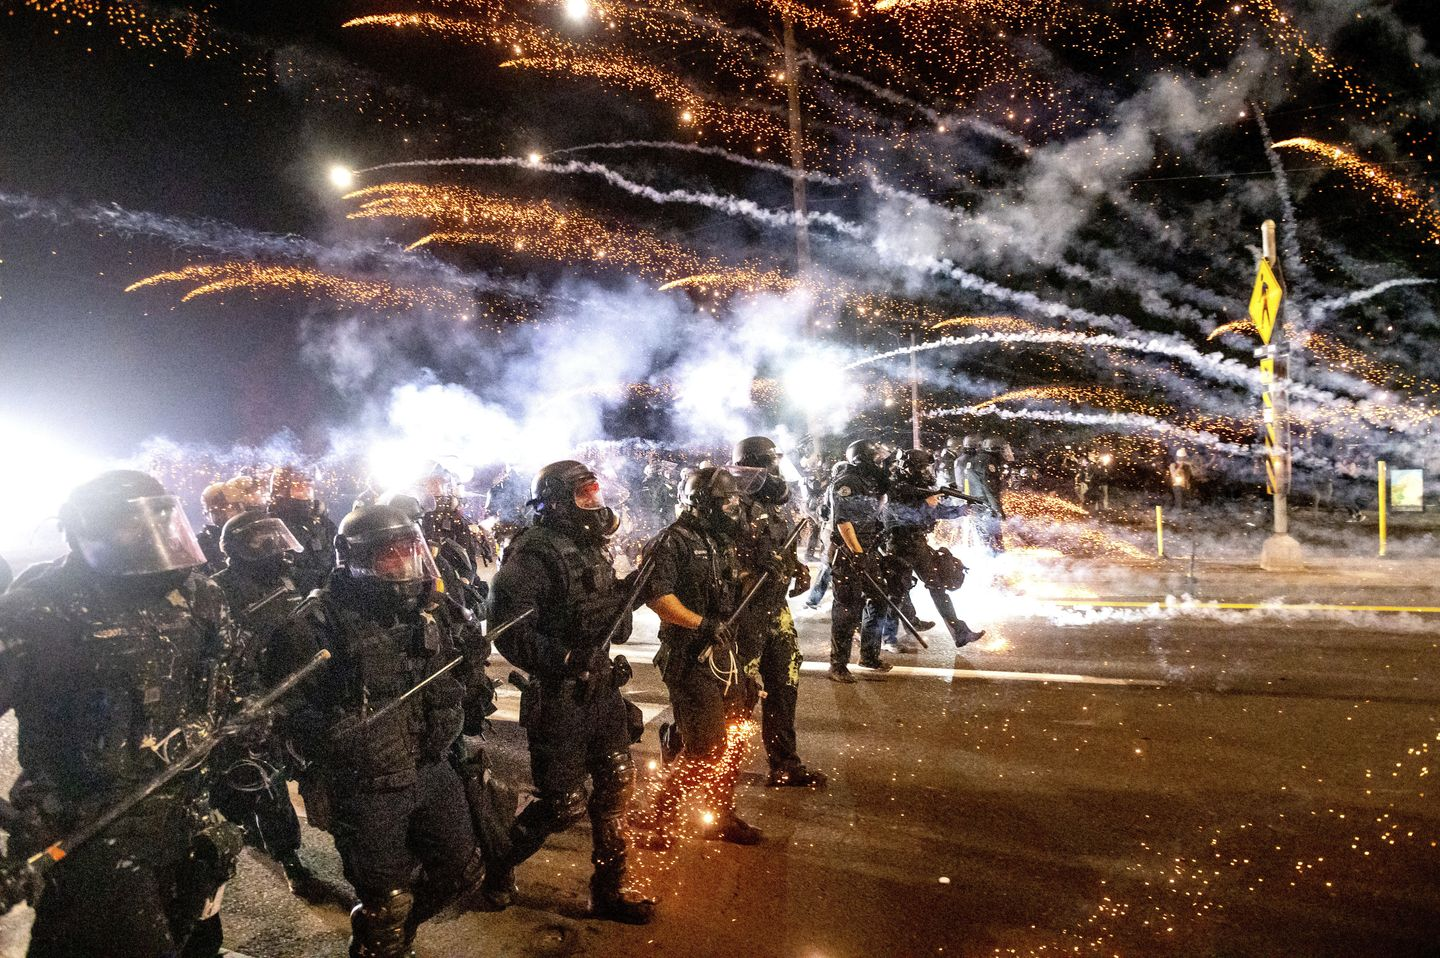 Portland protests mark 100 straight days; police dodge fire bombs